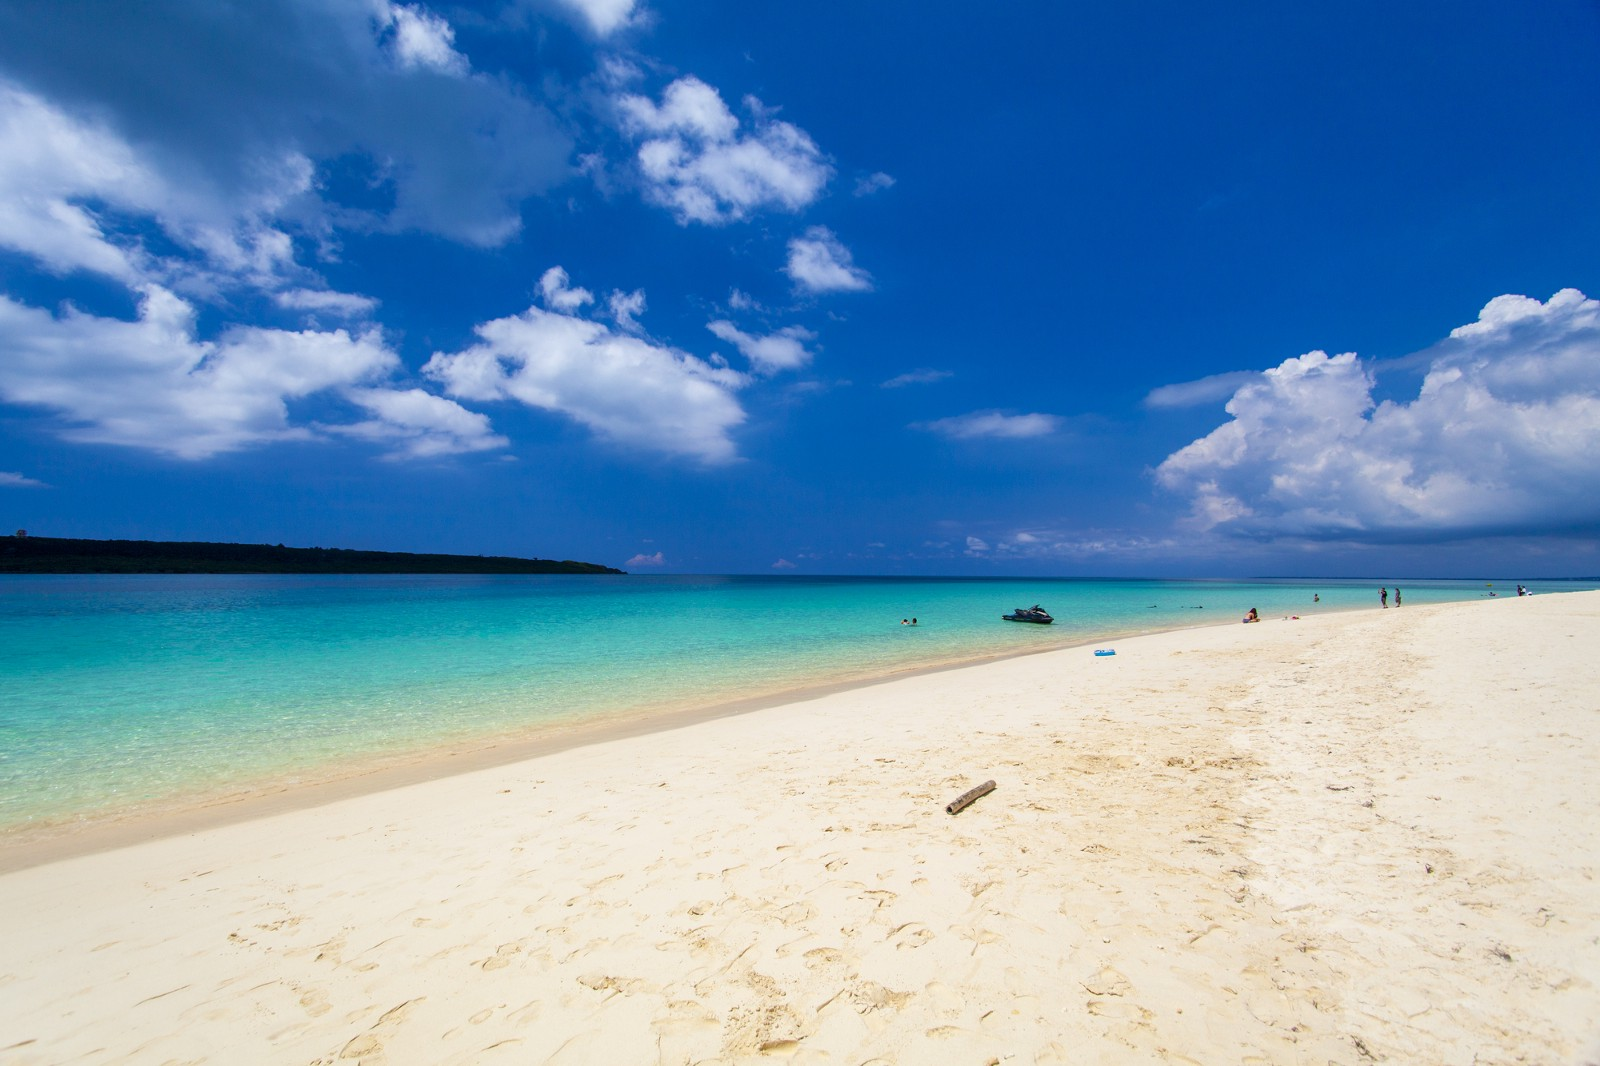 Okinawa Beaches: Best Season to Visit 2019